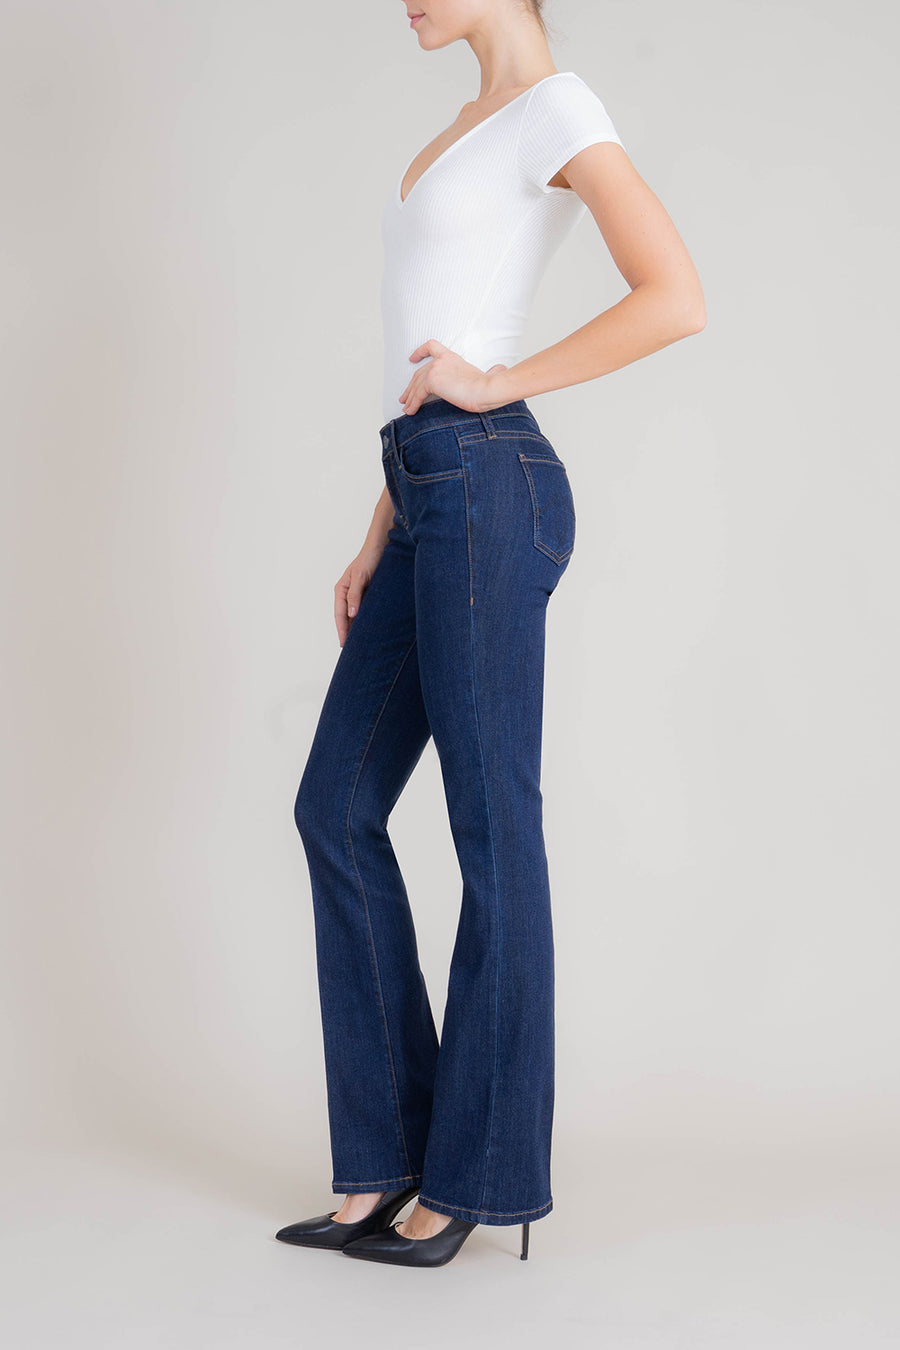 Chloe Boot - level99jeans